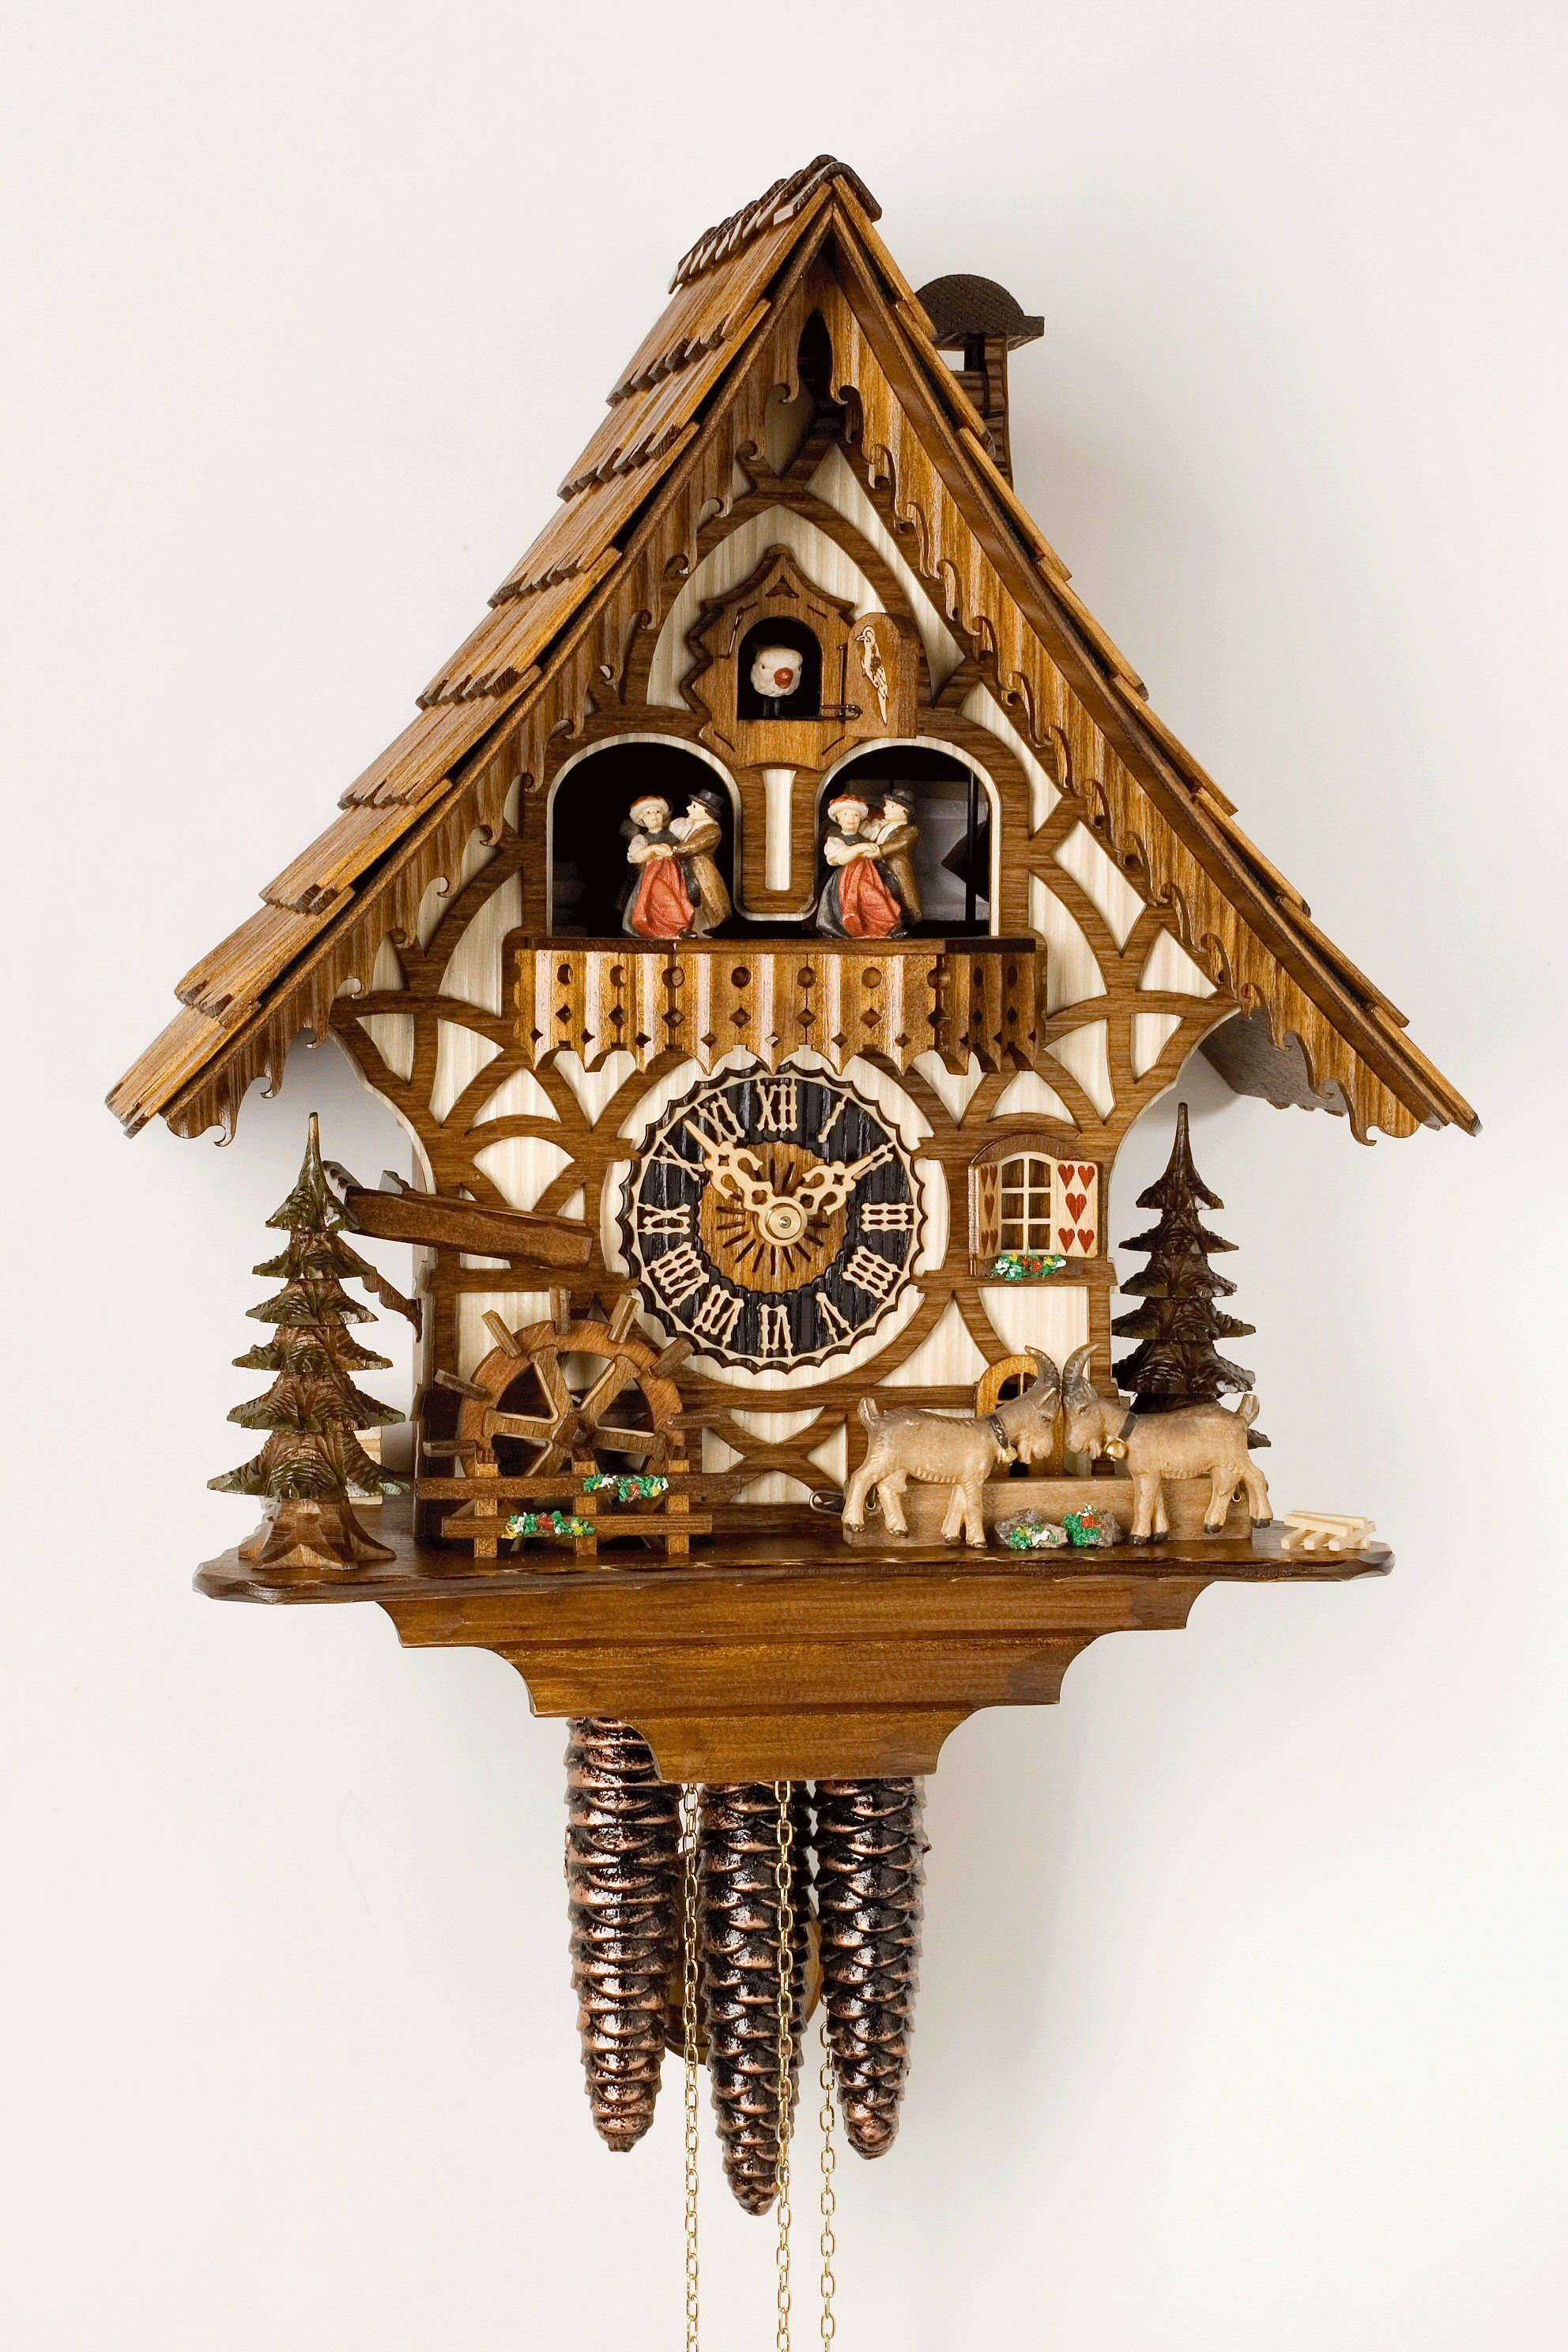 Best 25 coo coo clock ideas on pinterest cuckoo clocks How to make a cuckoo clock